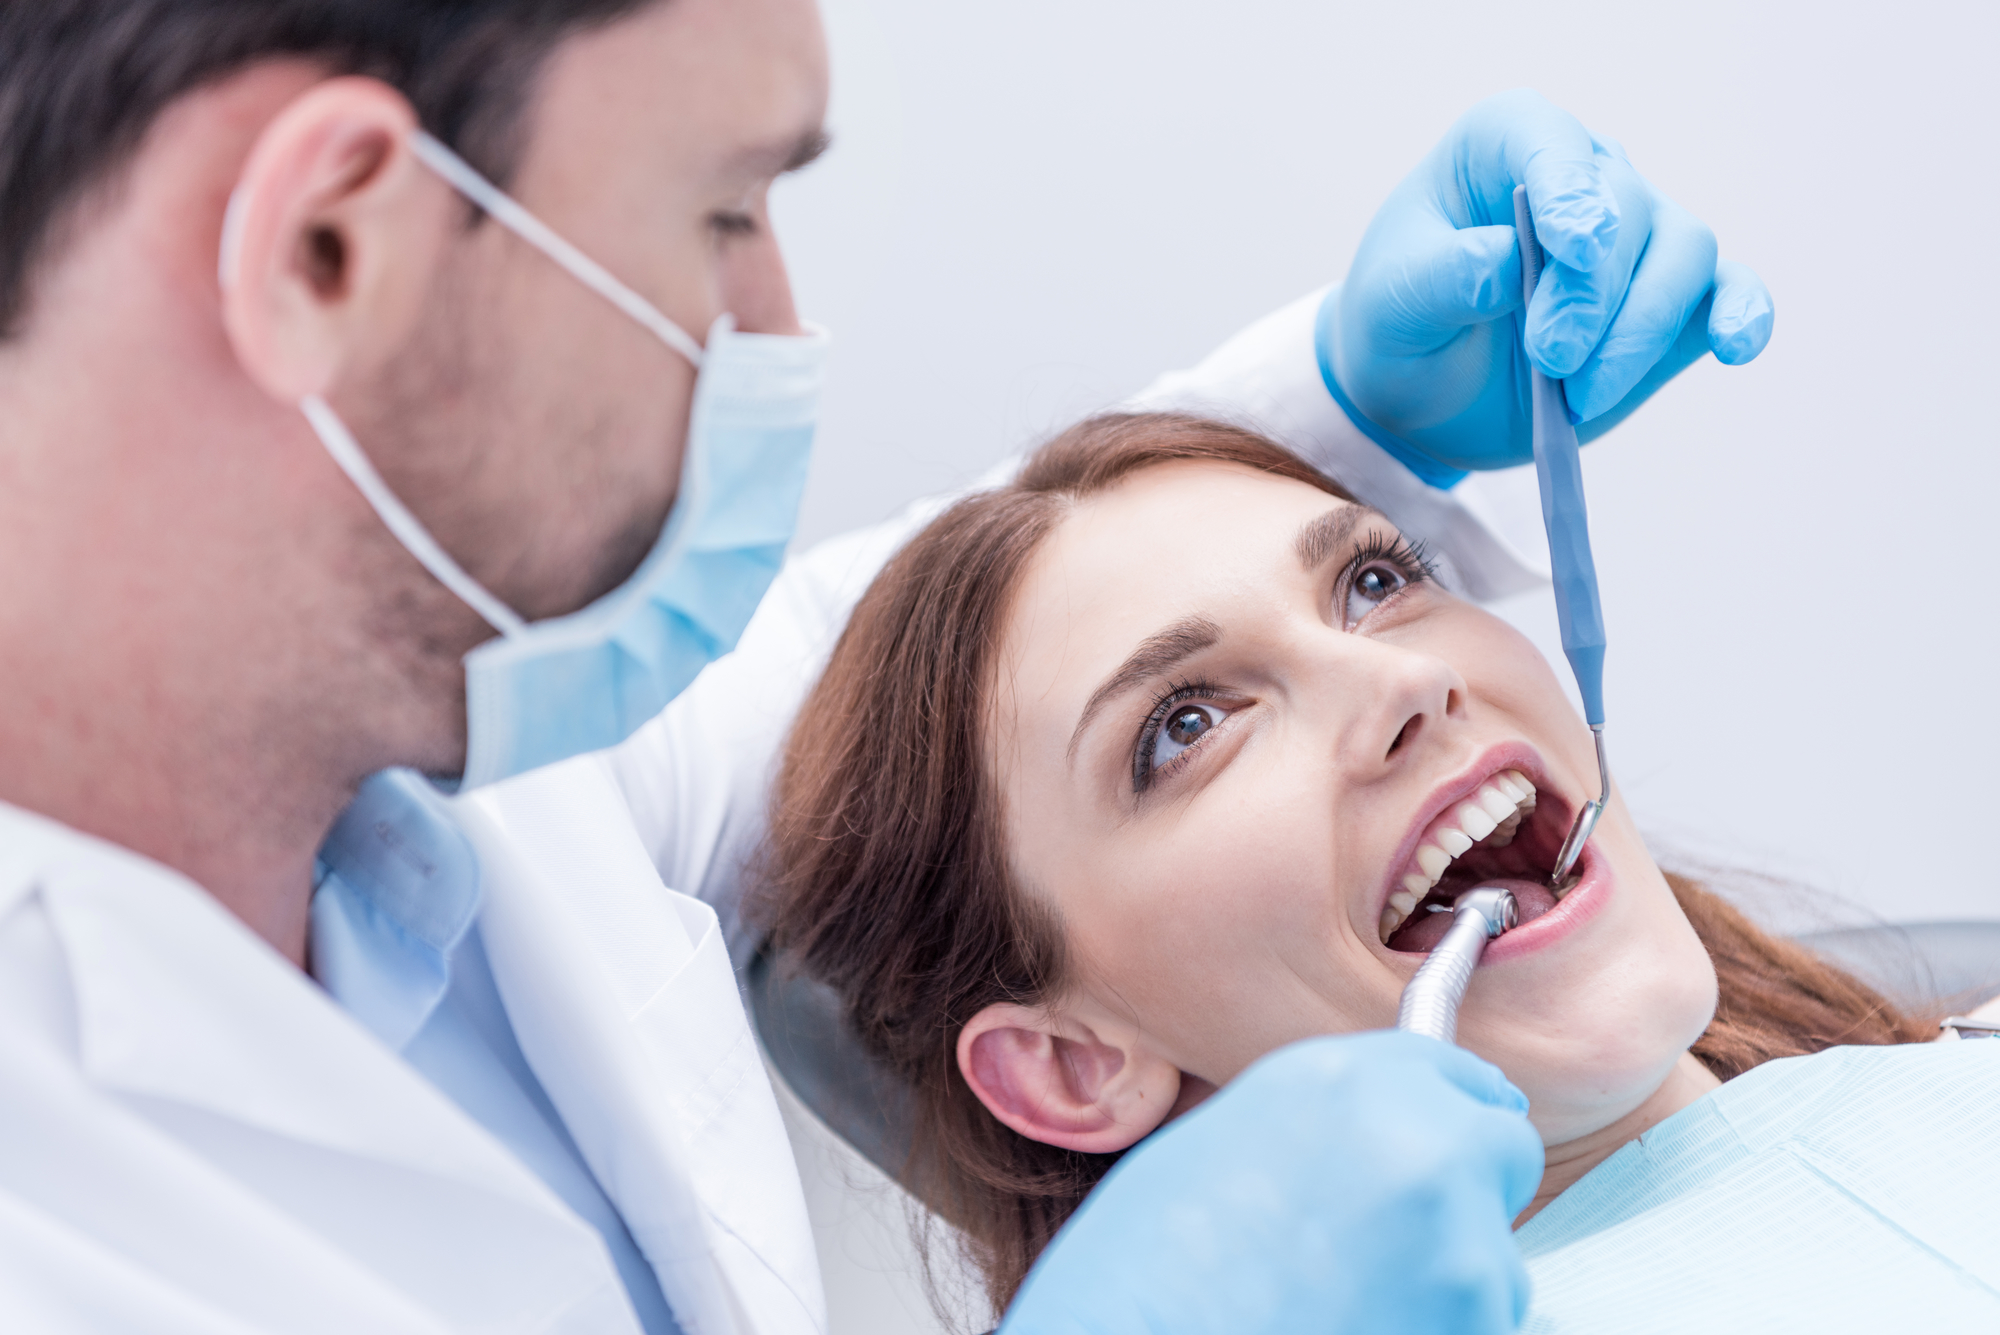 Where can I find the best cosmetic dentistry in Jupiter?